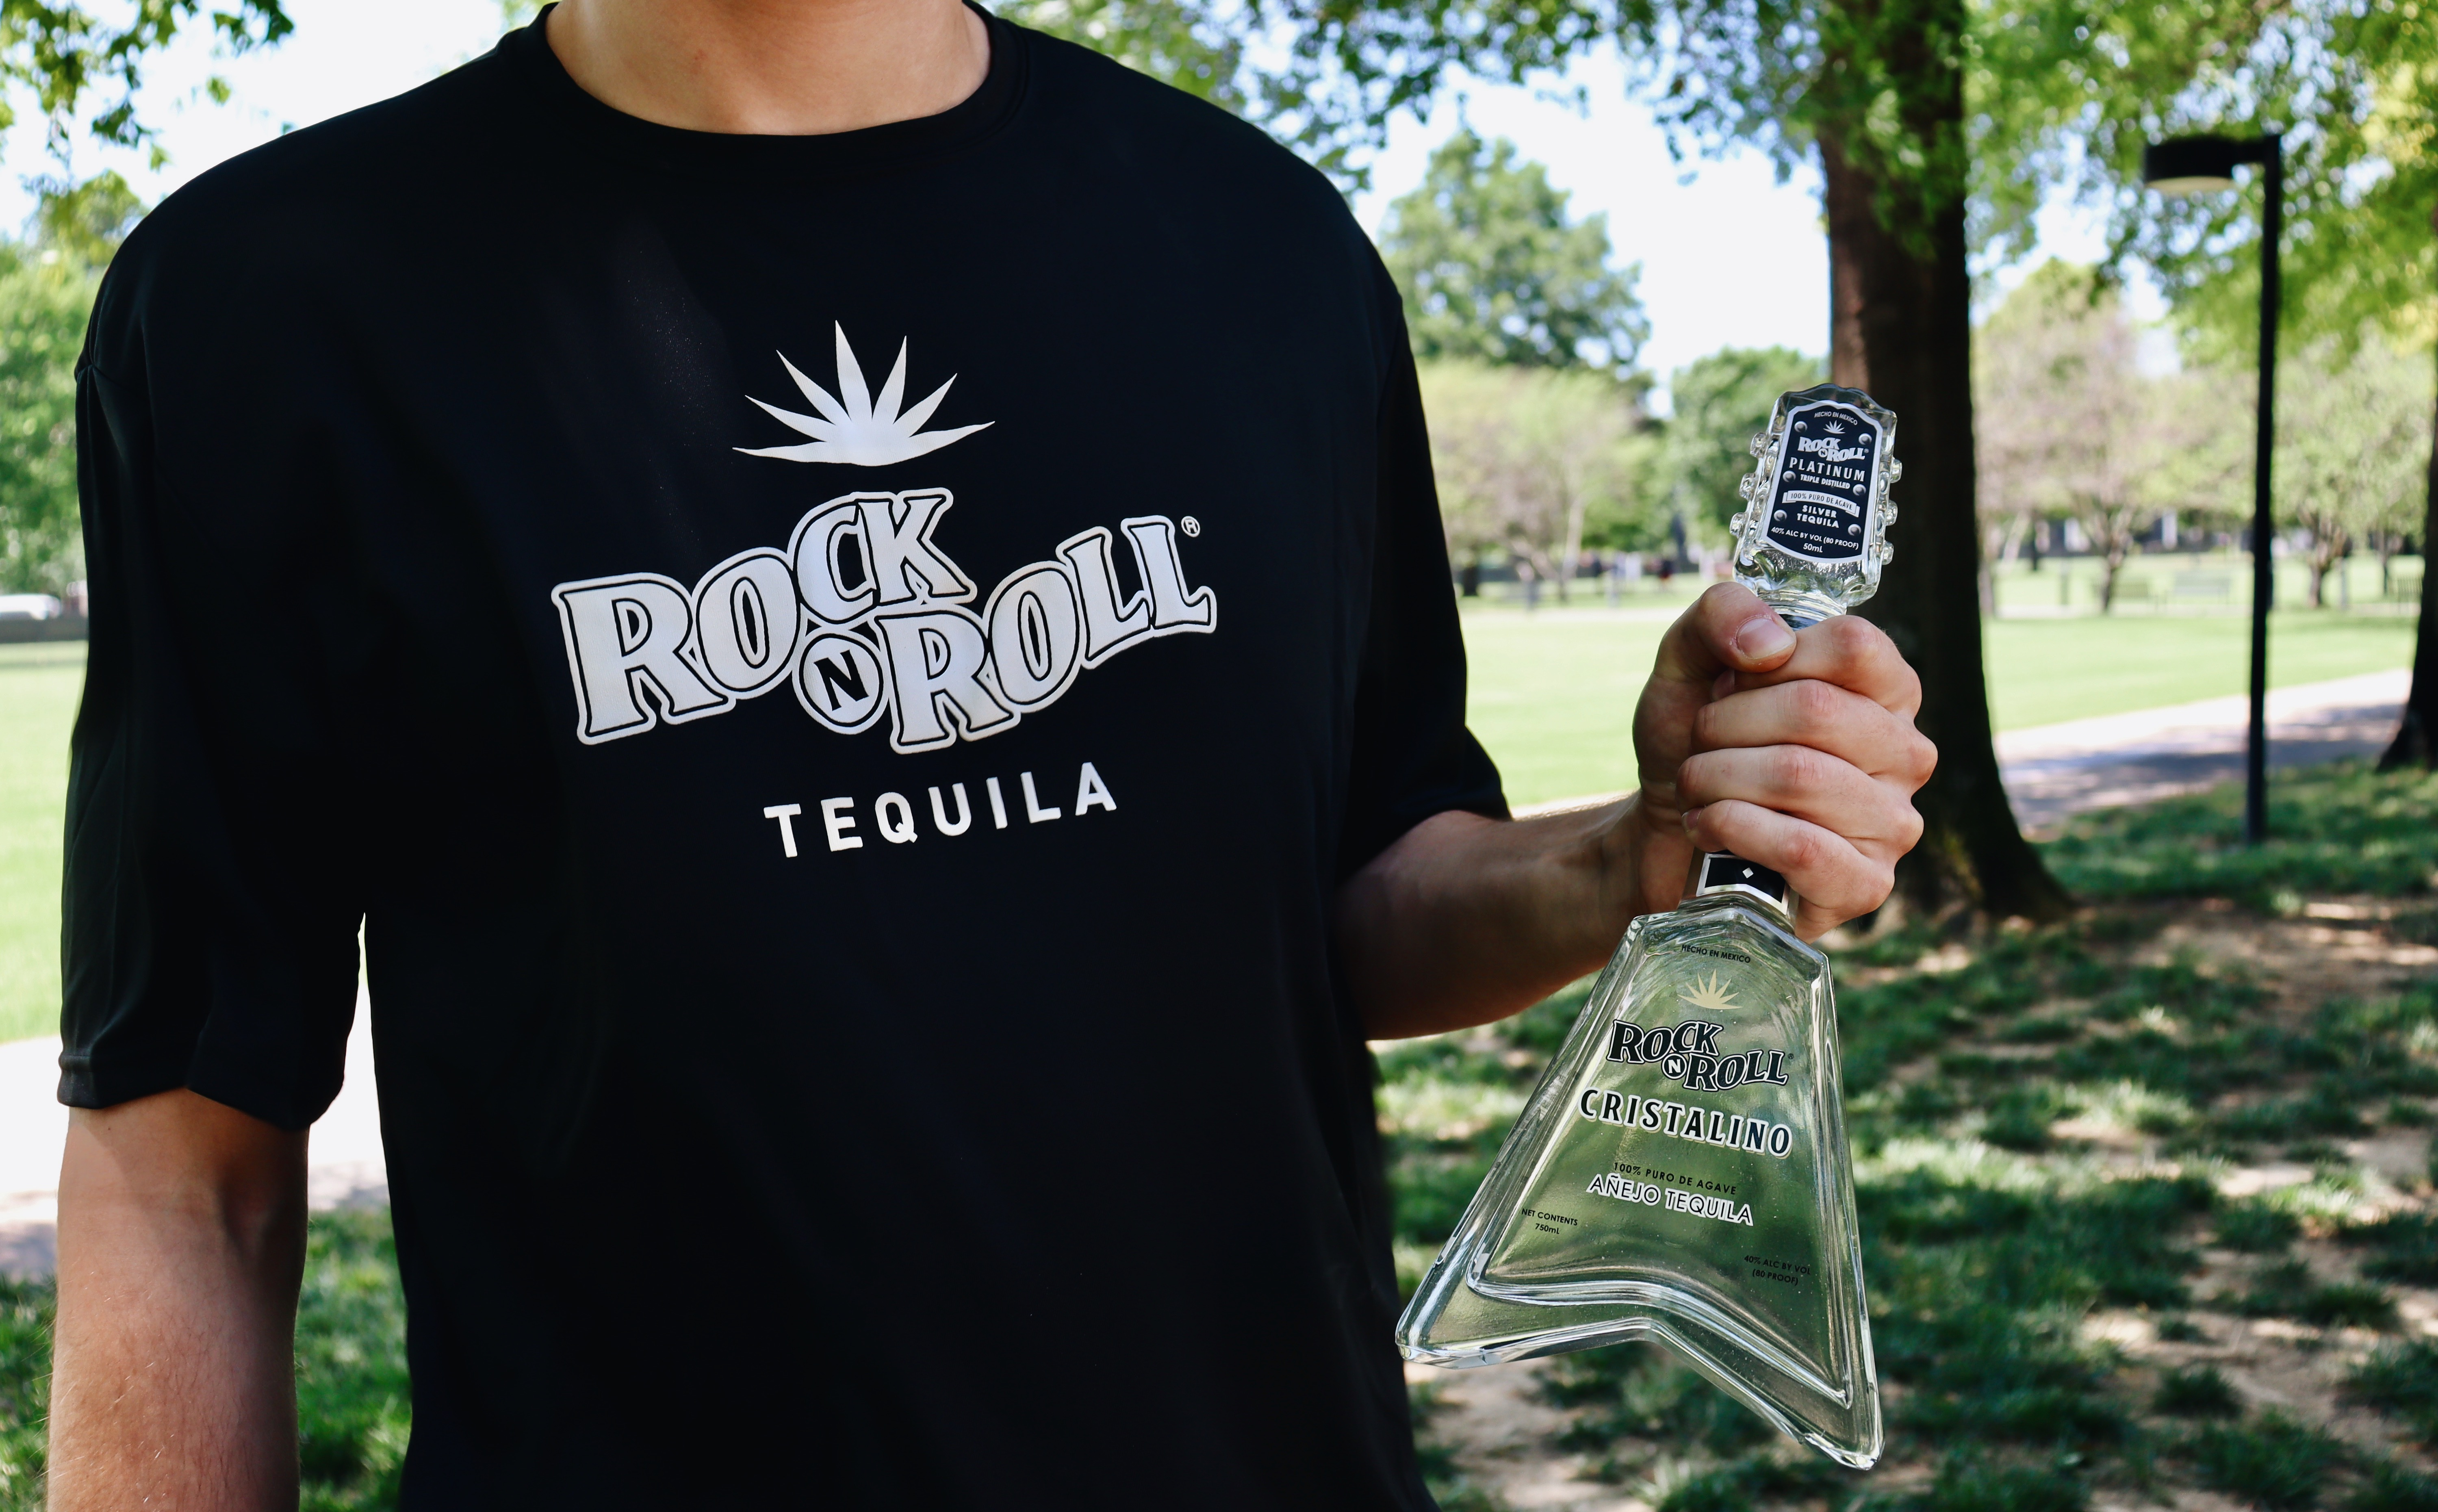 Rock N Roll Tequila Cristalino With Free T-shirt